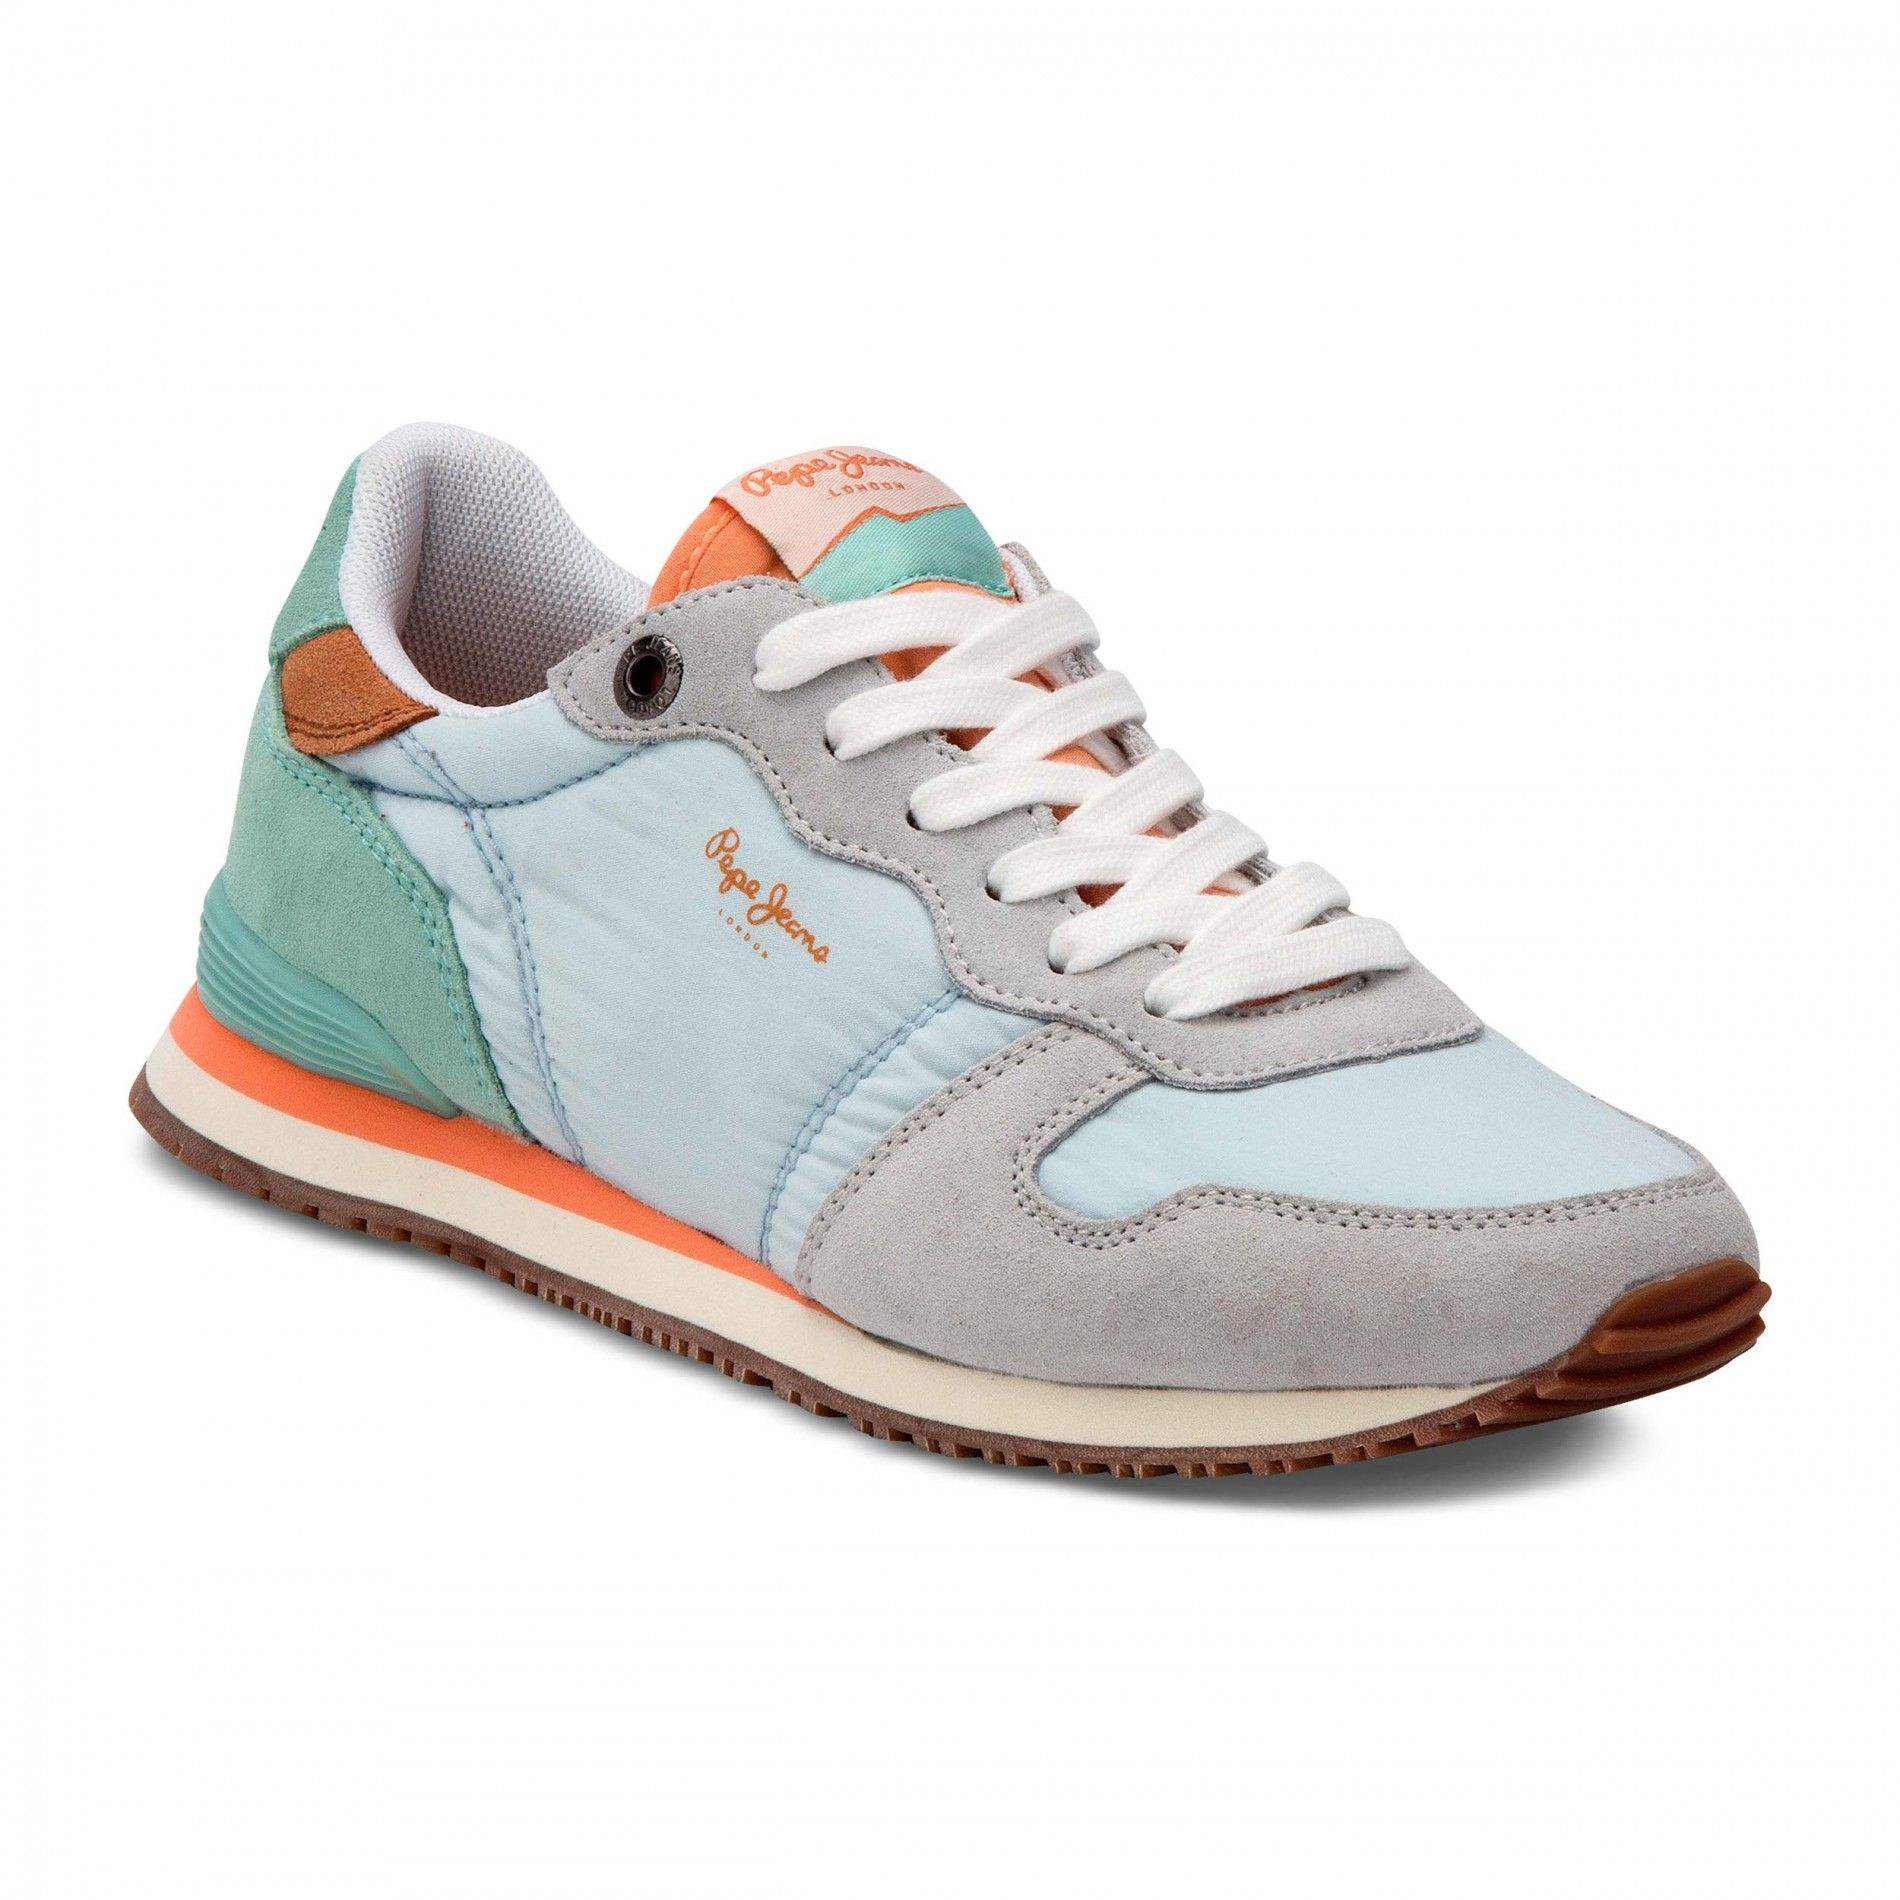 Chaussures - Chaussures À Lacets Pepe Jeans London ZWx4shrQ